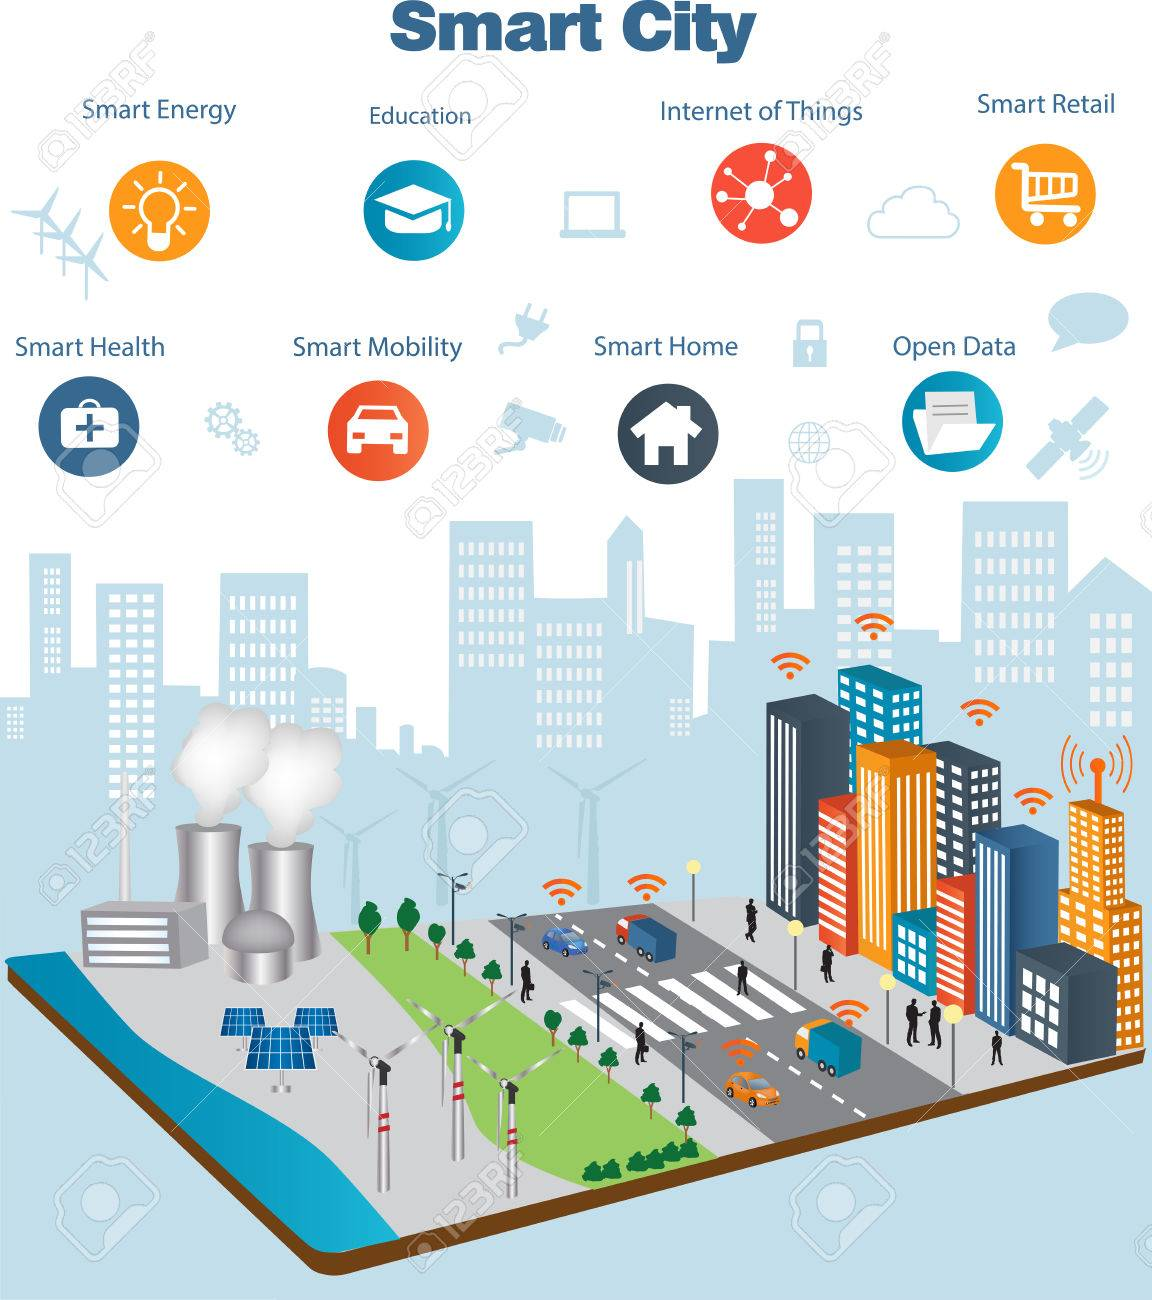 Smart city concept with different icon and elements. Modern city design with future technology for living. Illustration of innovations and Internet of things.Internet of things/Smart city - 57051446